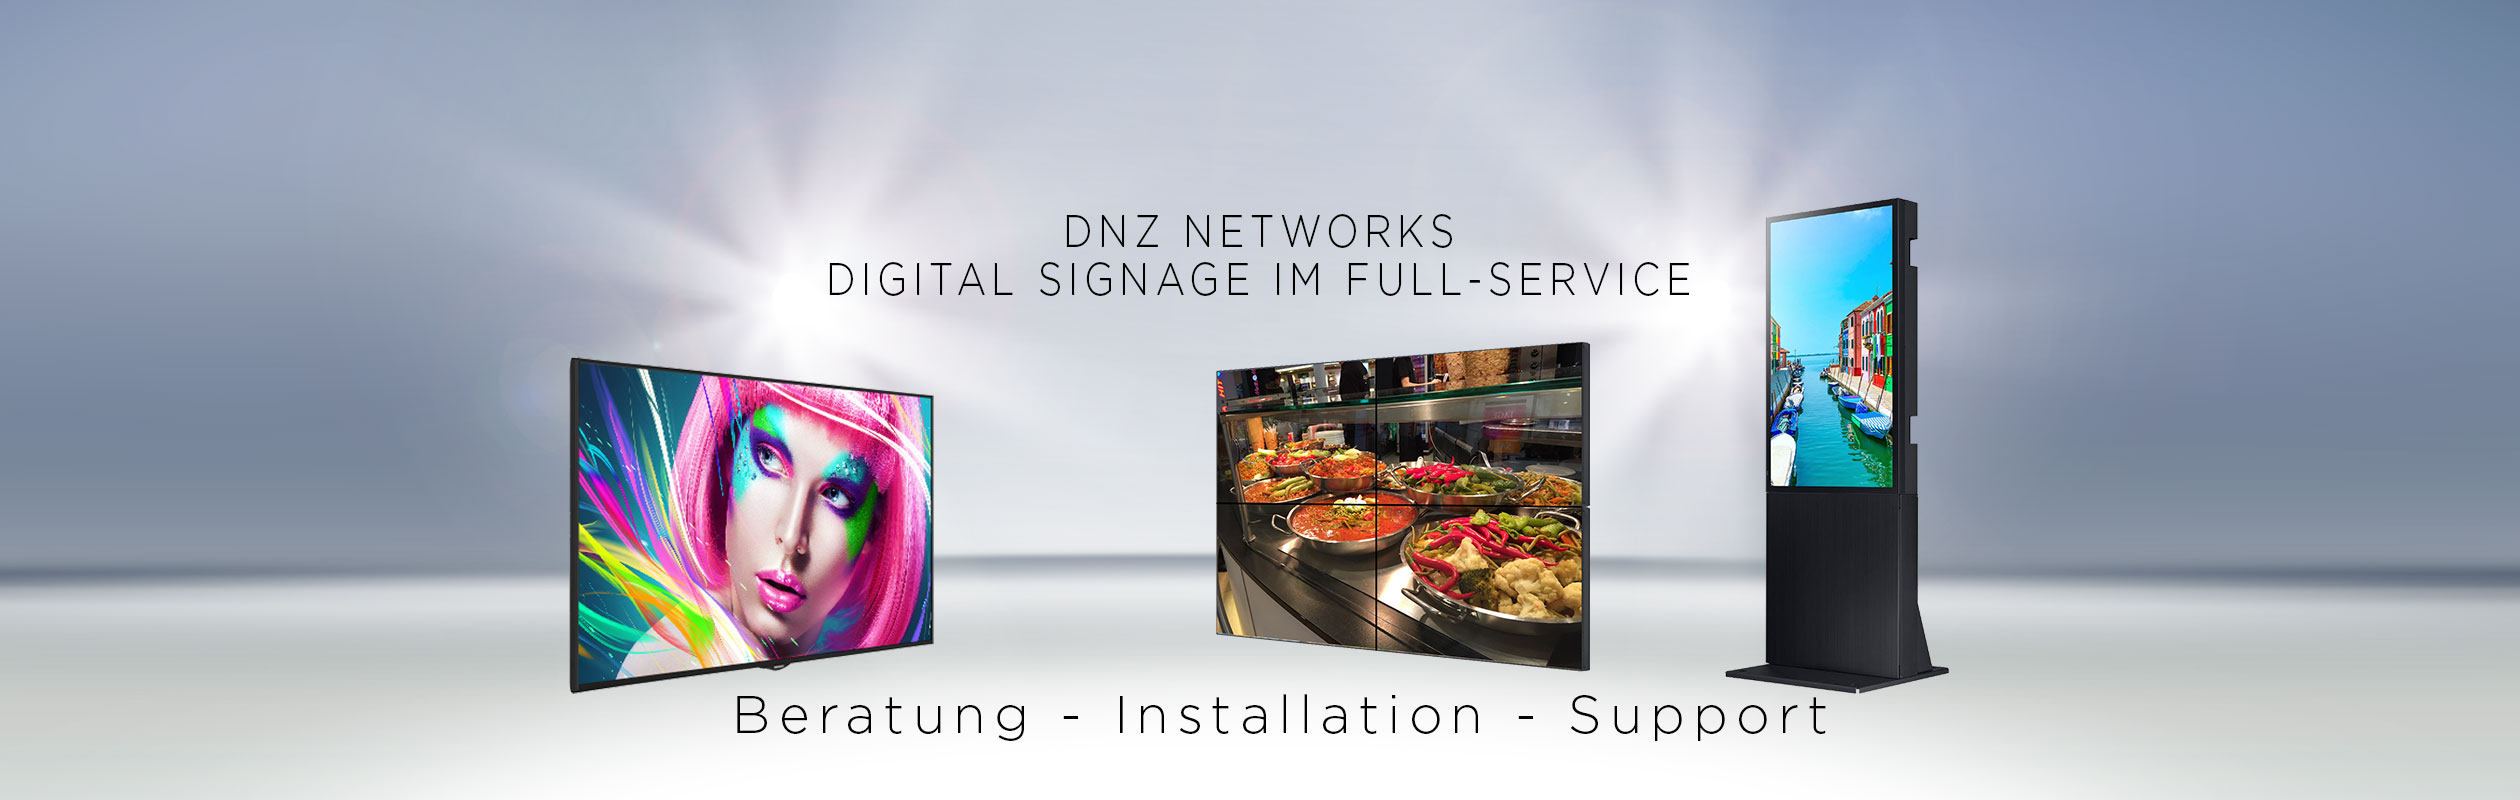 Digitale-Menuboard-Display-Bildschirme-HeaderImg-DNZ-Networks